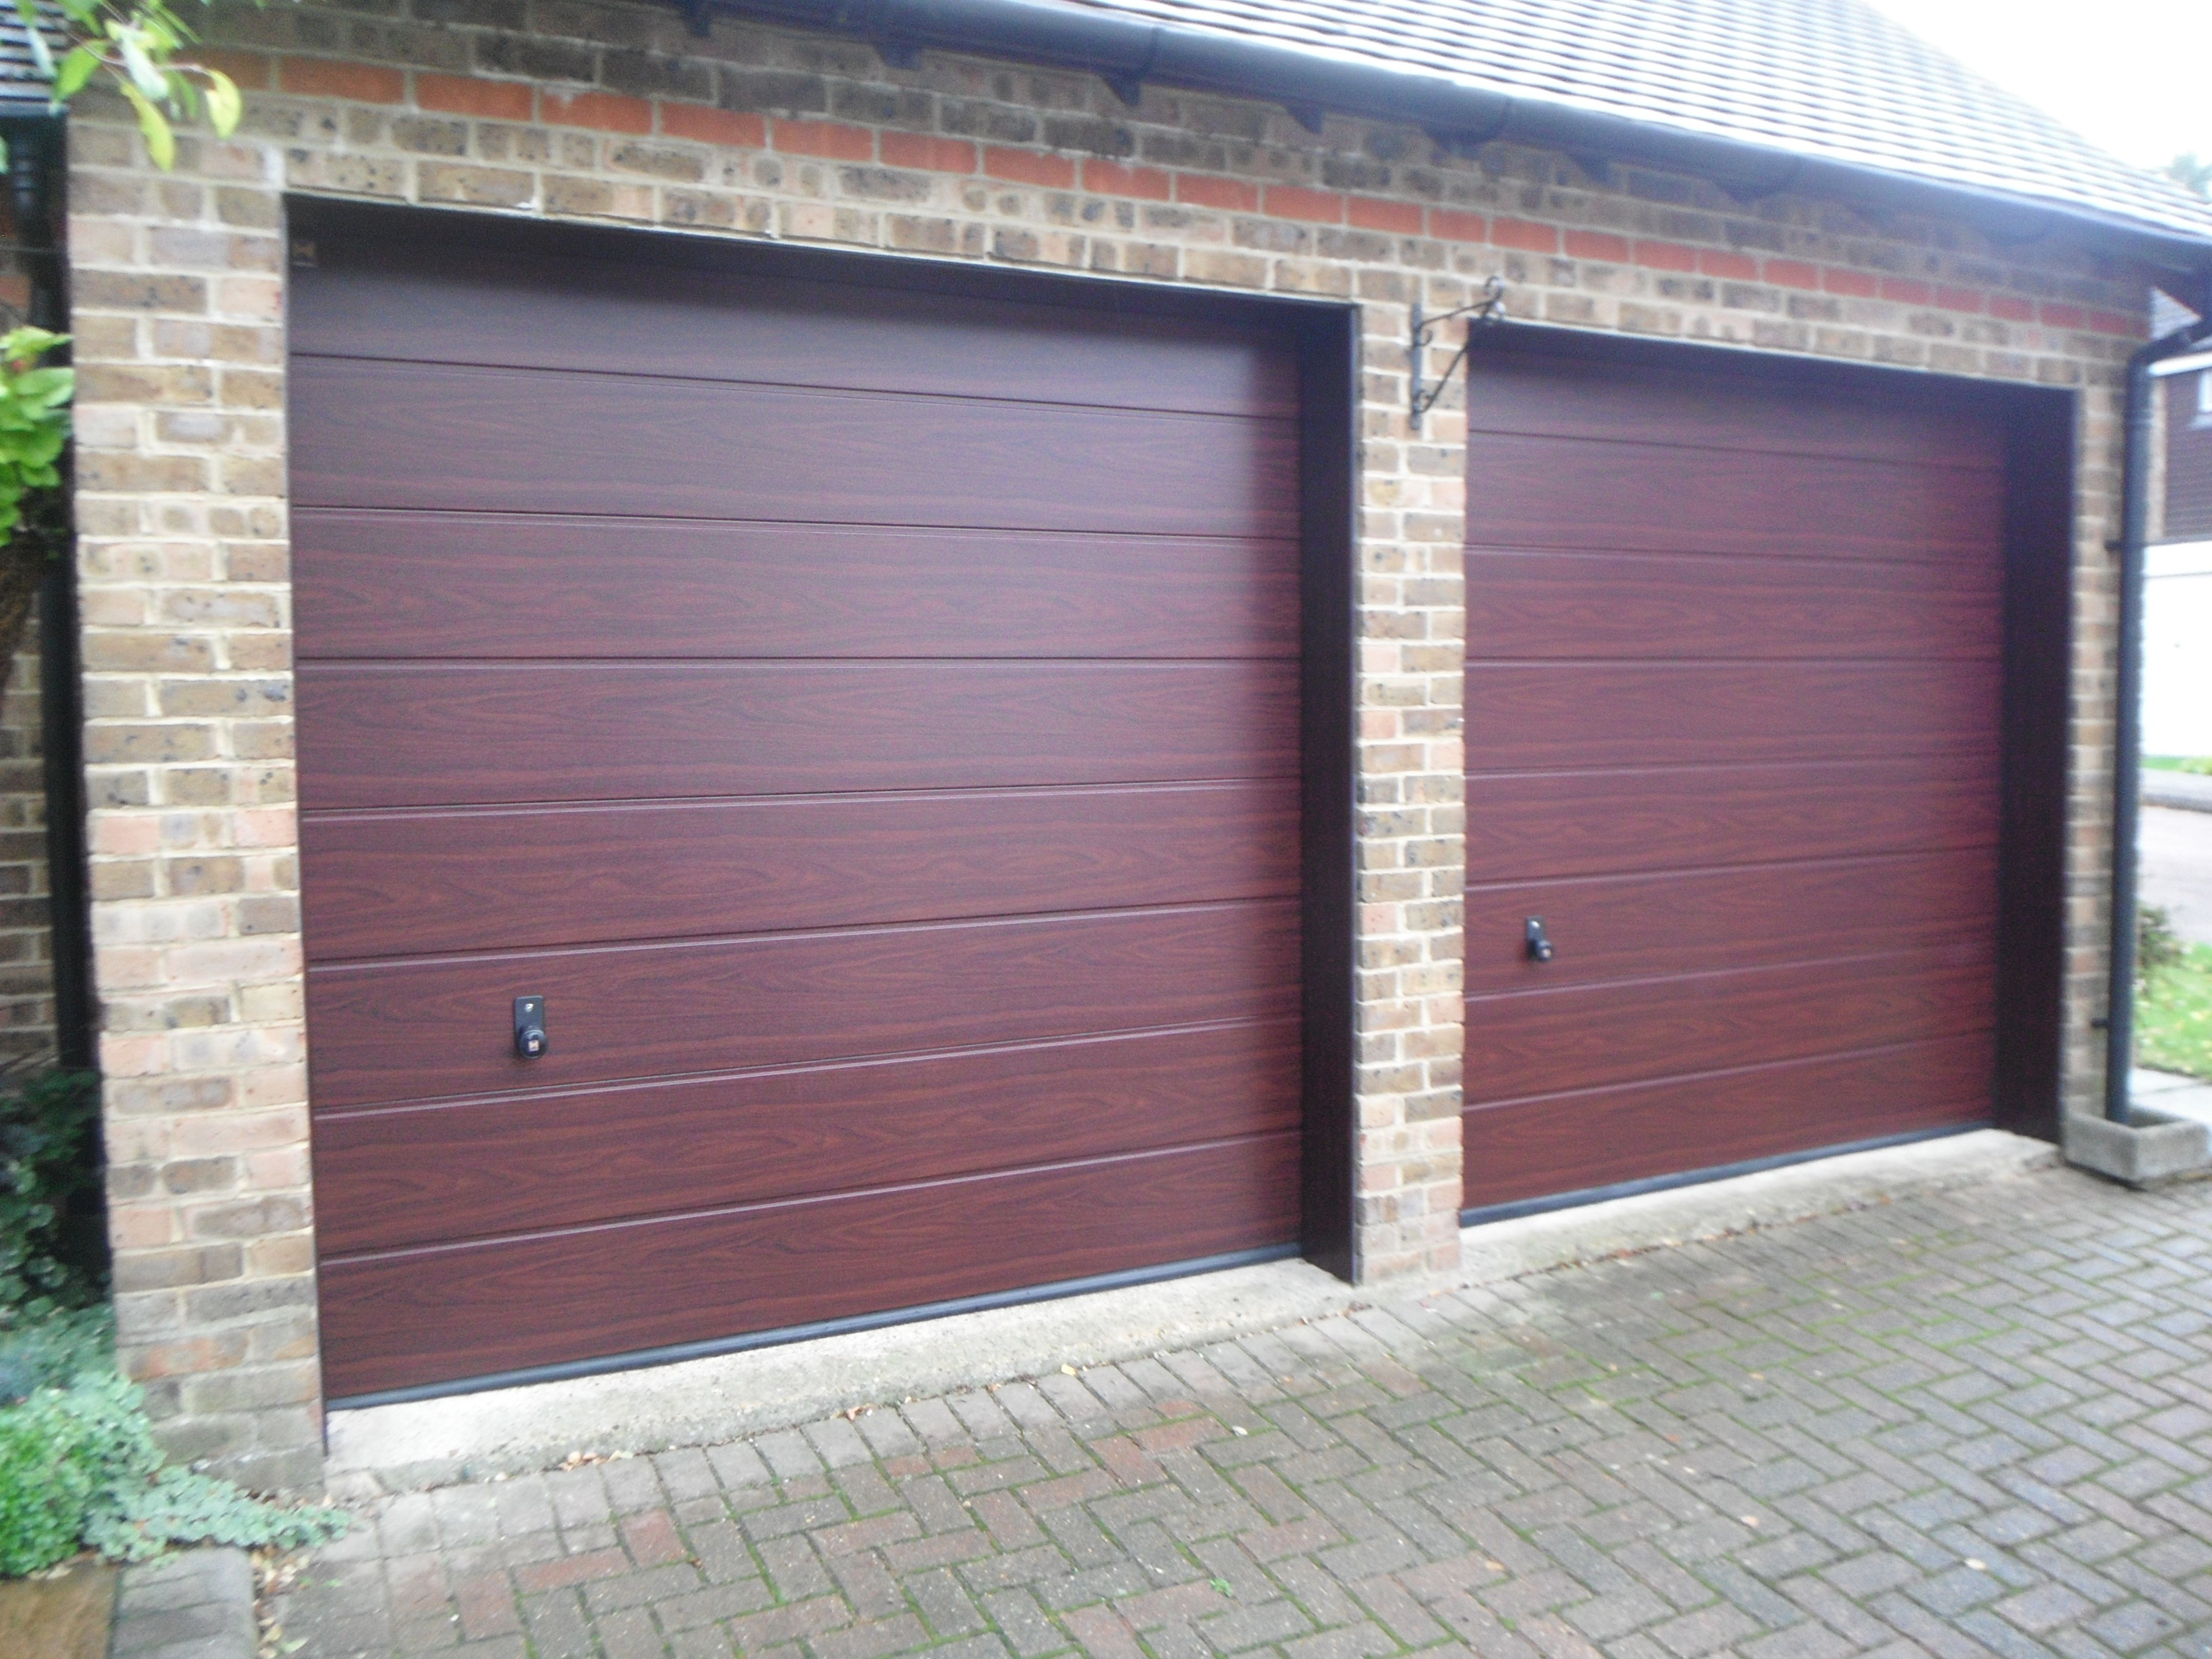 Hormann m ribbed decograin rosewood sectional garage door with hormann m ribbed decograin rosewood sectional garage door with black handles rubansaba